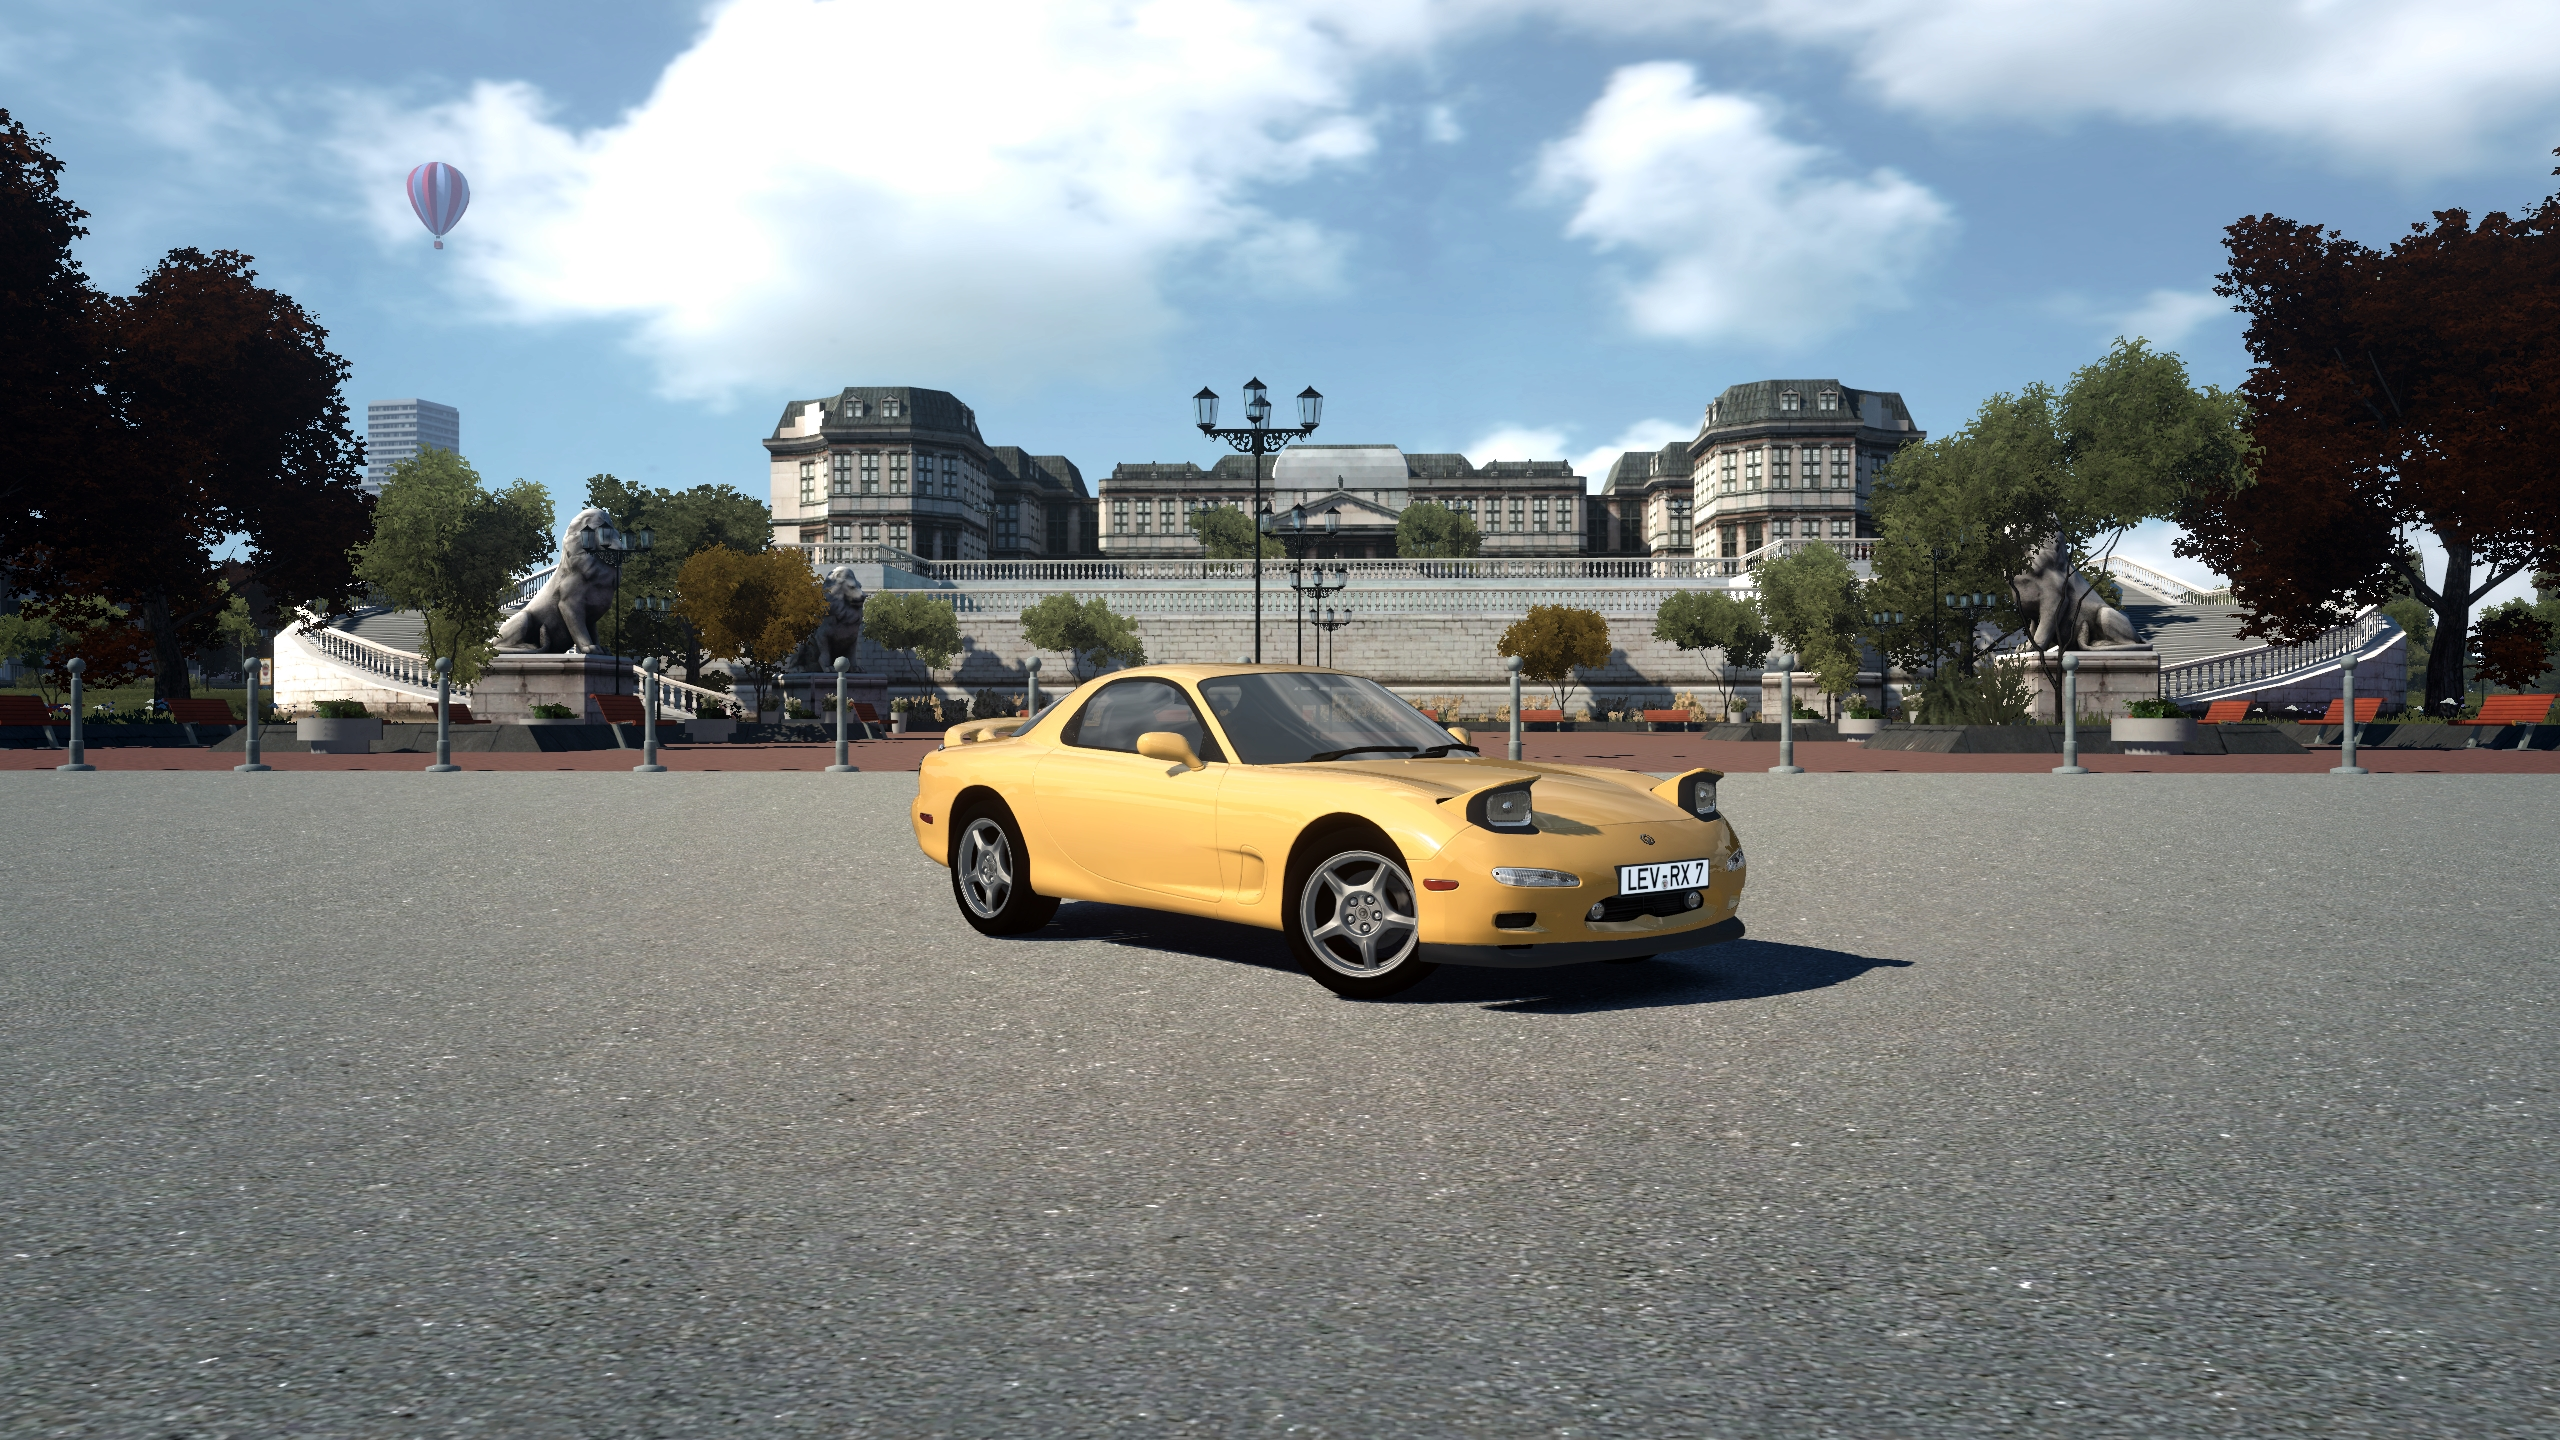 http://gameshots.eu/images/2018/09/23/RX-7.jpg